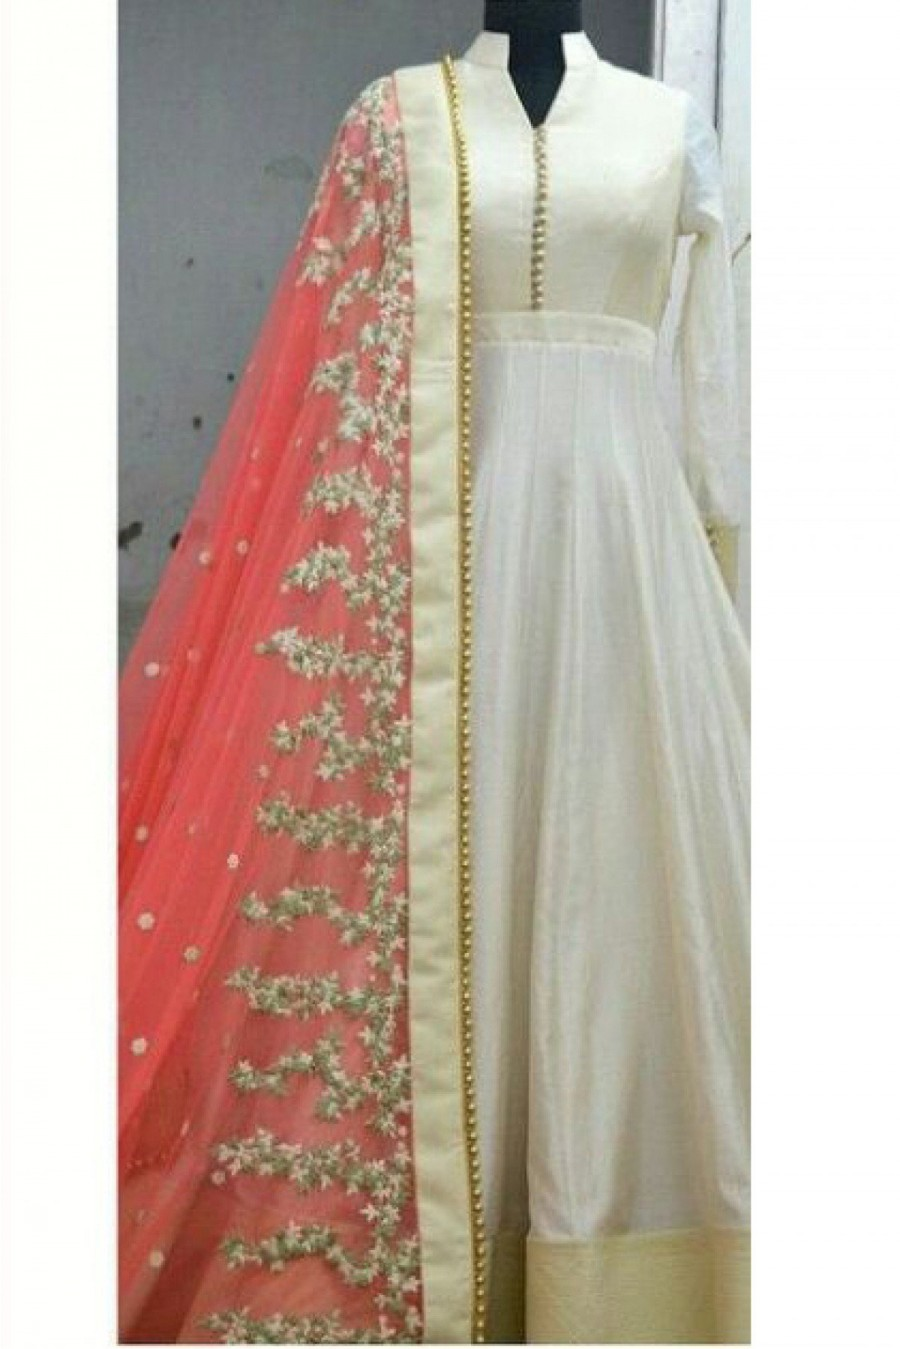 eeda81ae85 Buy Party Wear Banglori Silk Anarkali Suit in Off White and Red Colour  Online